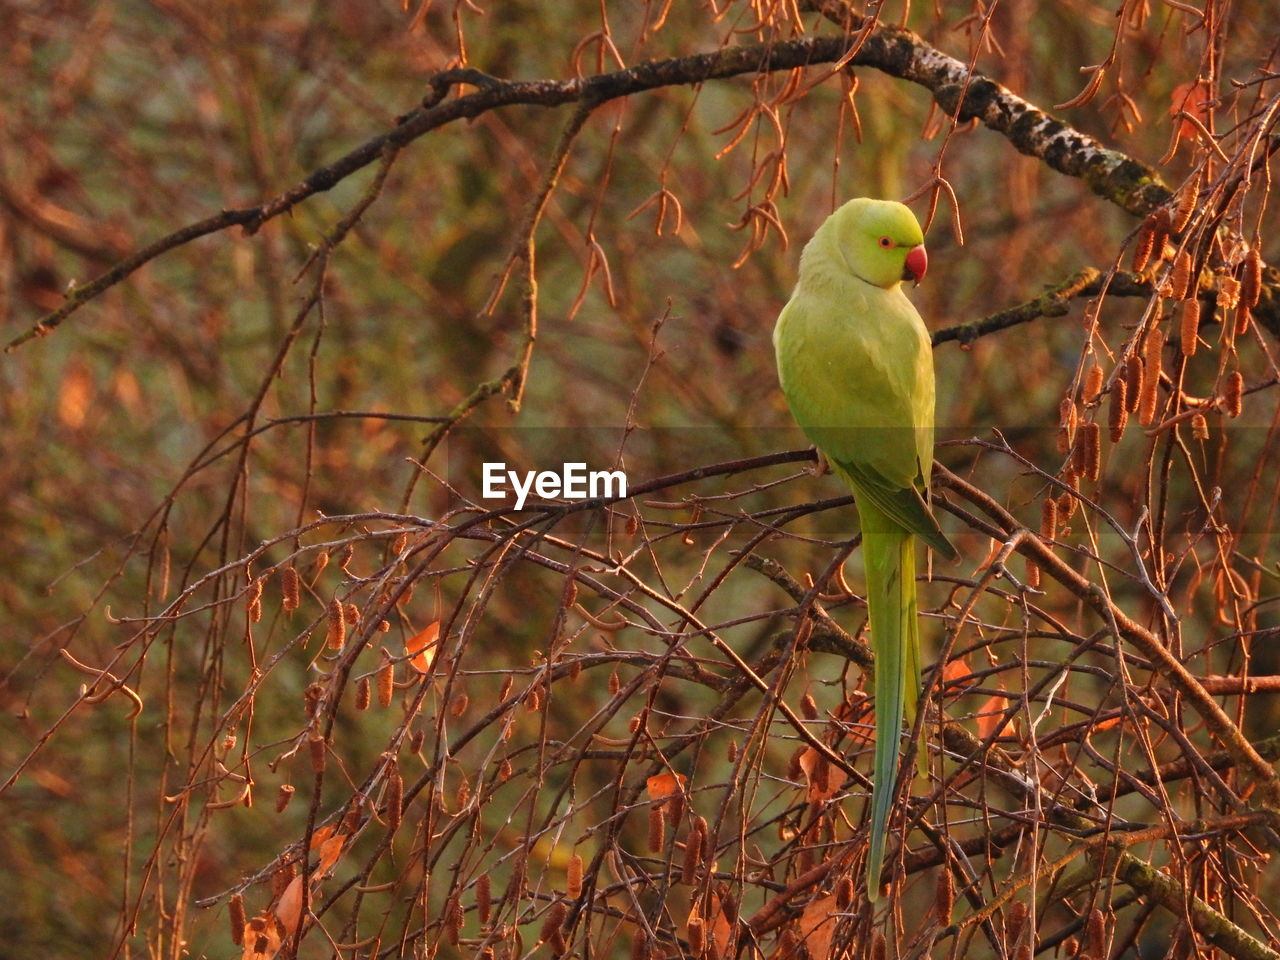 bird, vertebrate, animal themes, animal wildlife, animal, animals in the wild, perching, tree, one animal, plant, no people, branch, day, nature, outdoors, focus on foreground, green color, land, forest, selective focus